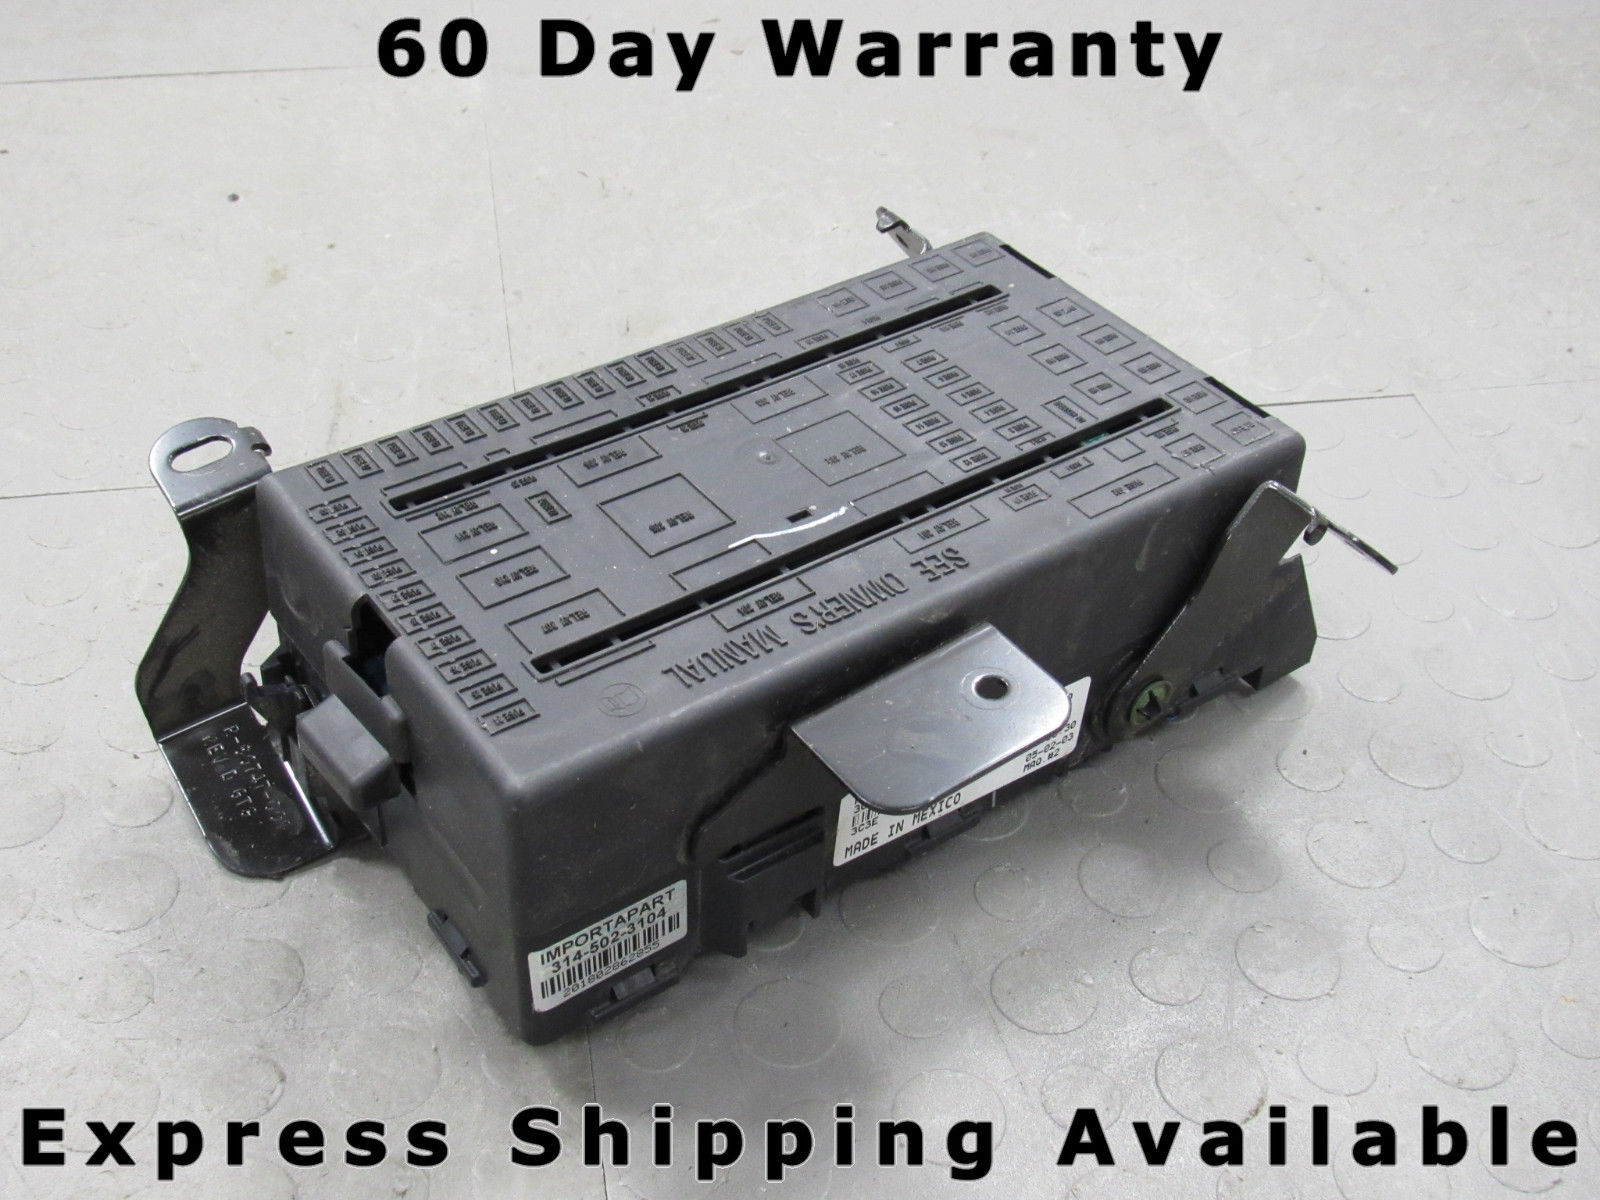 03-04 F250 F350 Super Duty Fuse Relay Power Distribution Block  3C3T-14A067-EC T